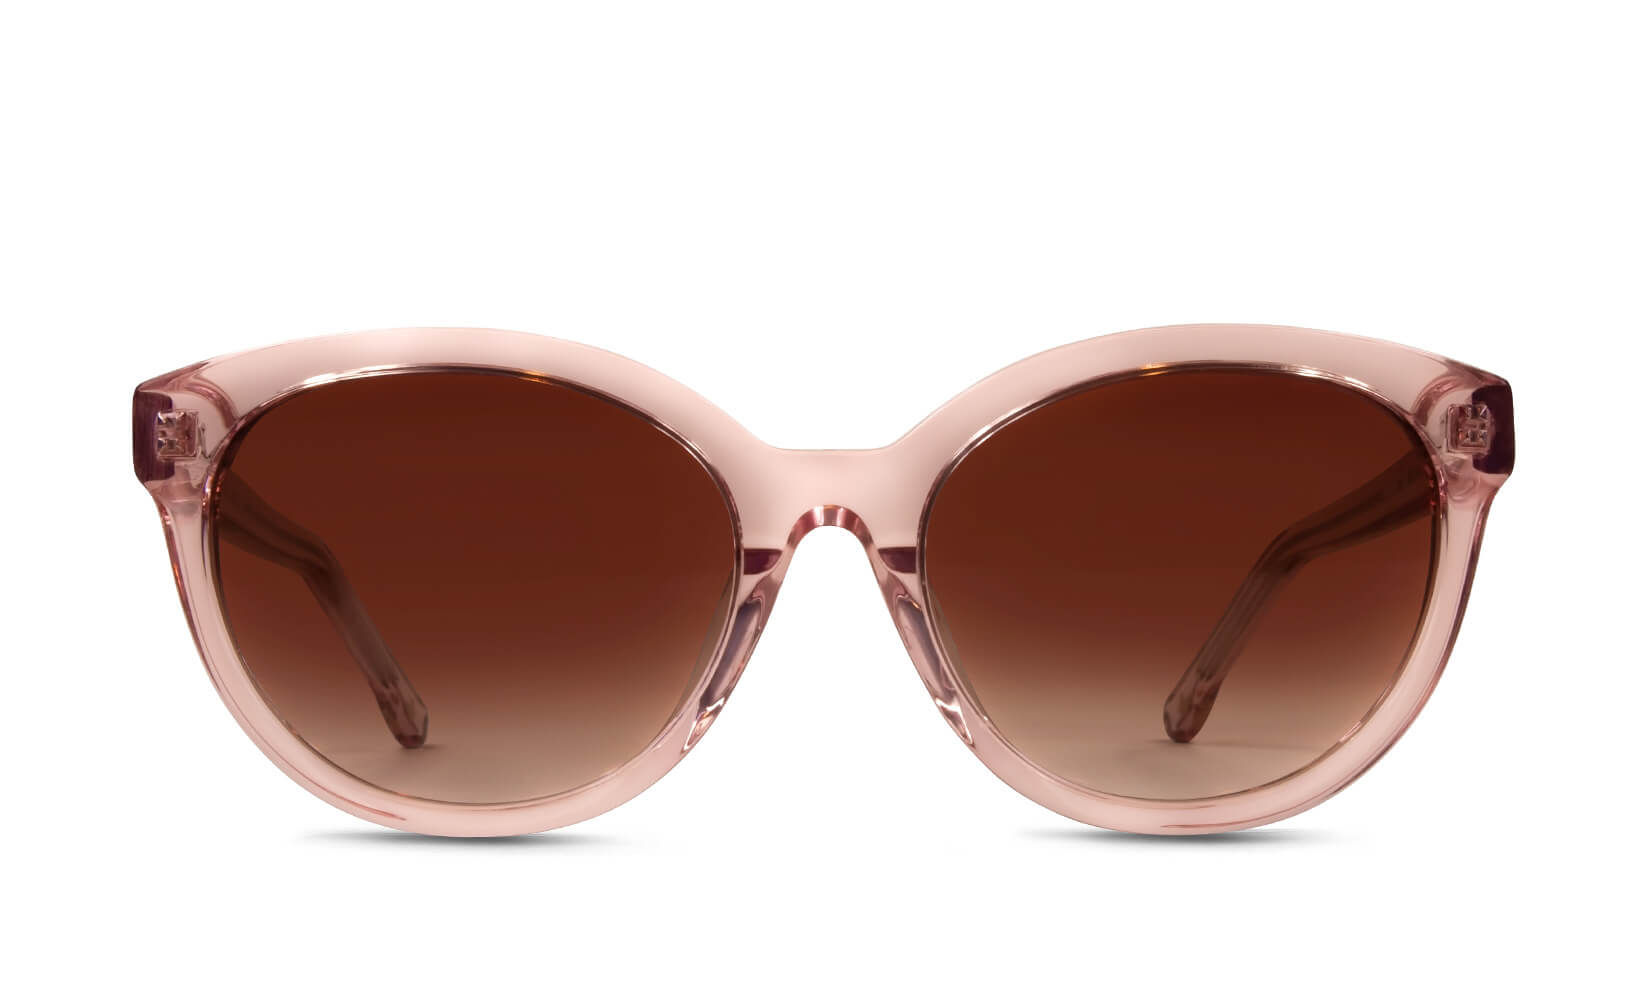 Kelly Blush Pink Polarized Sunglasses